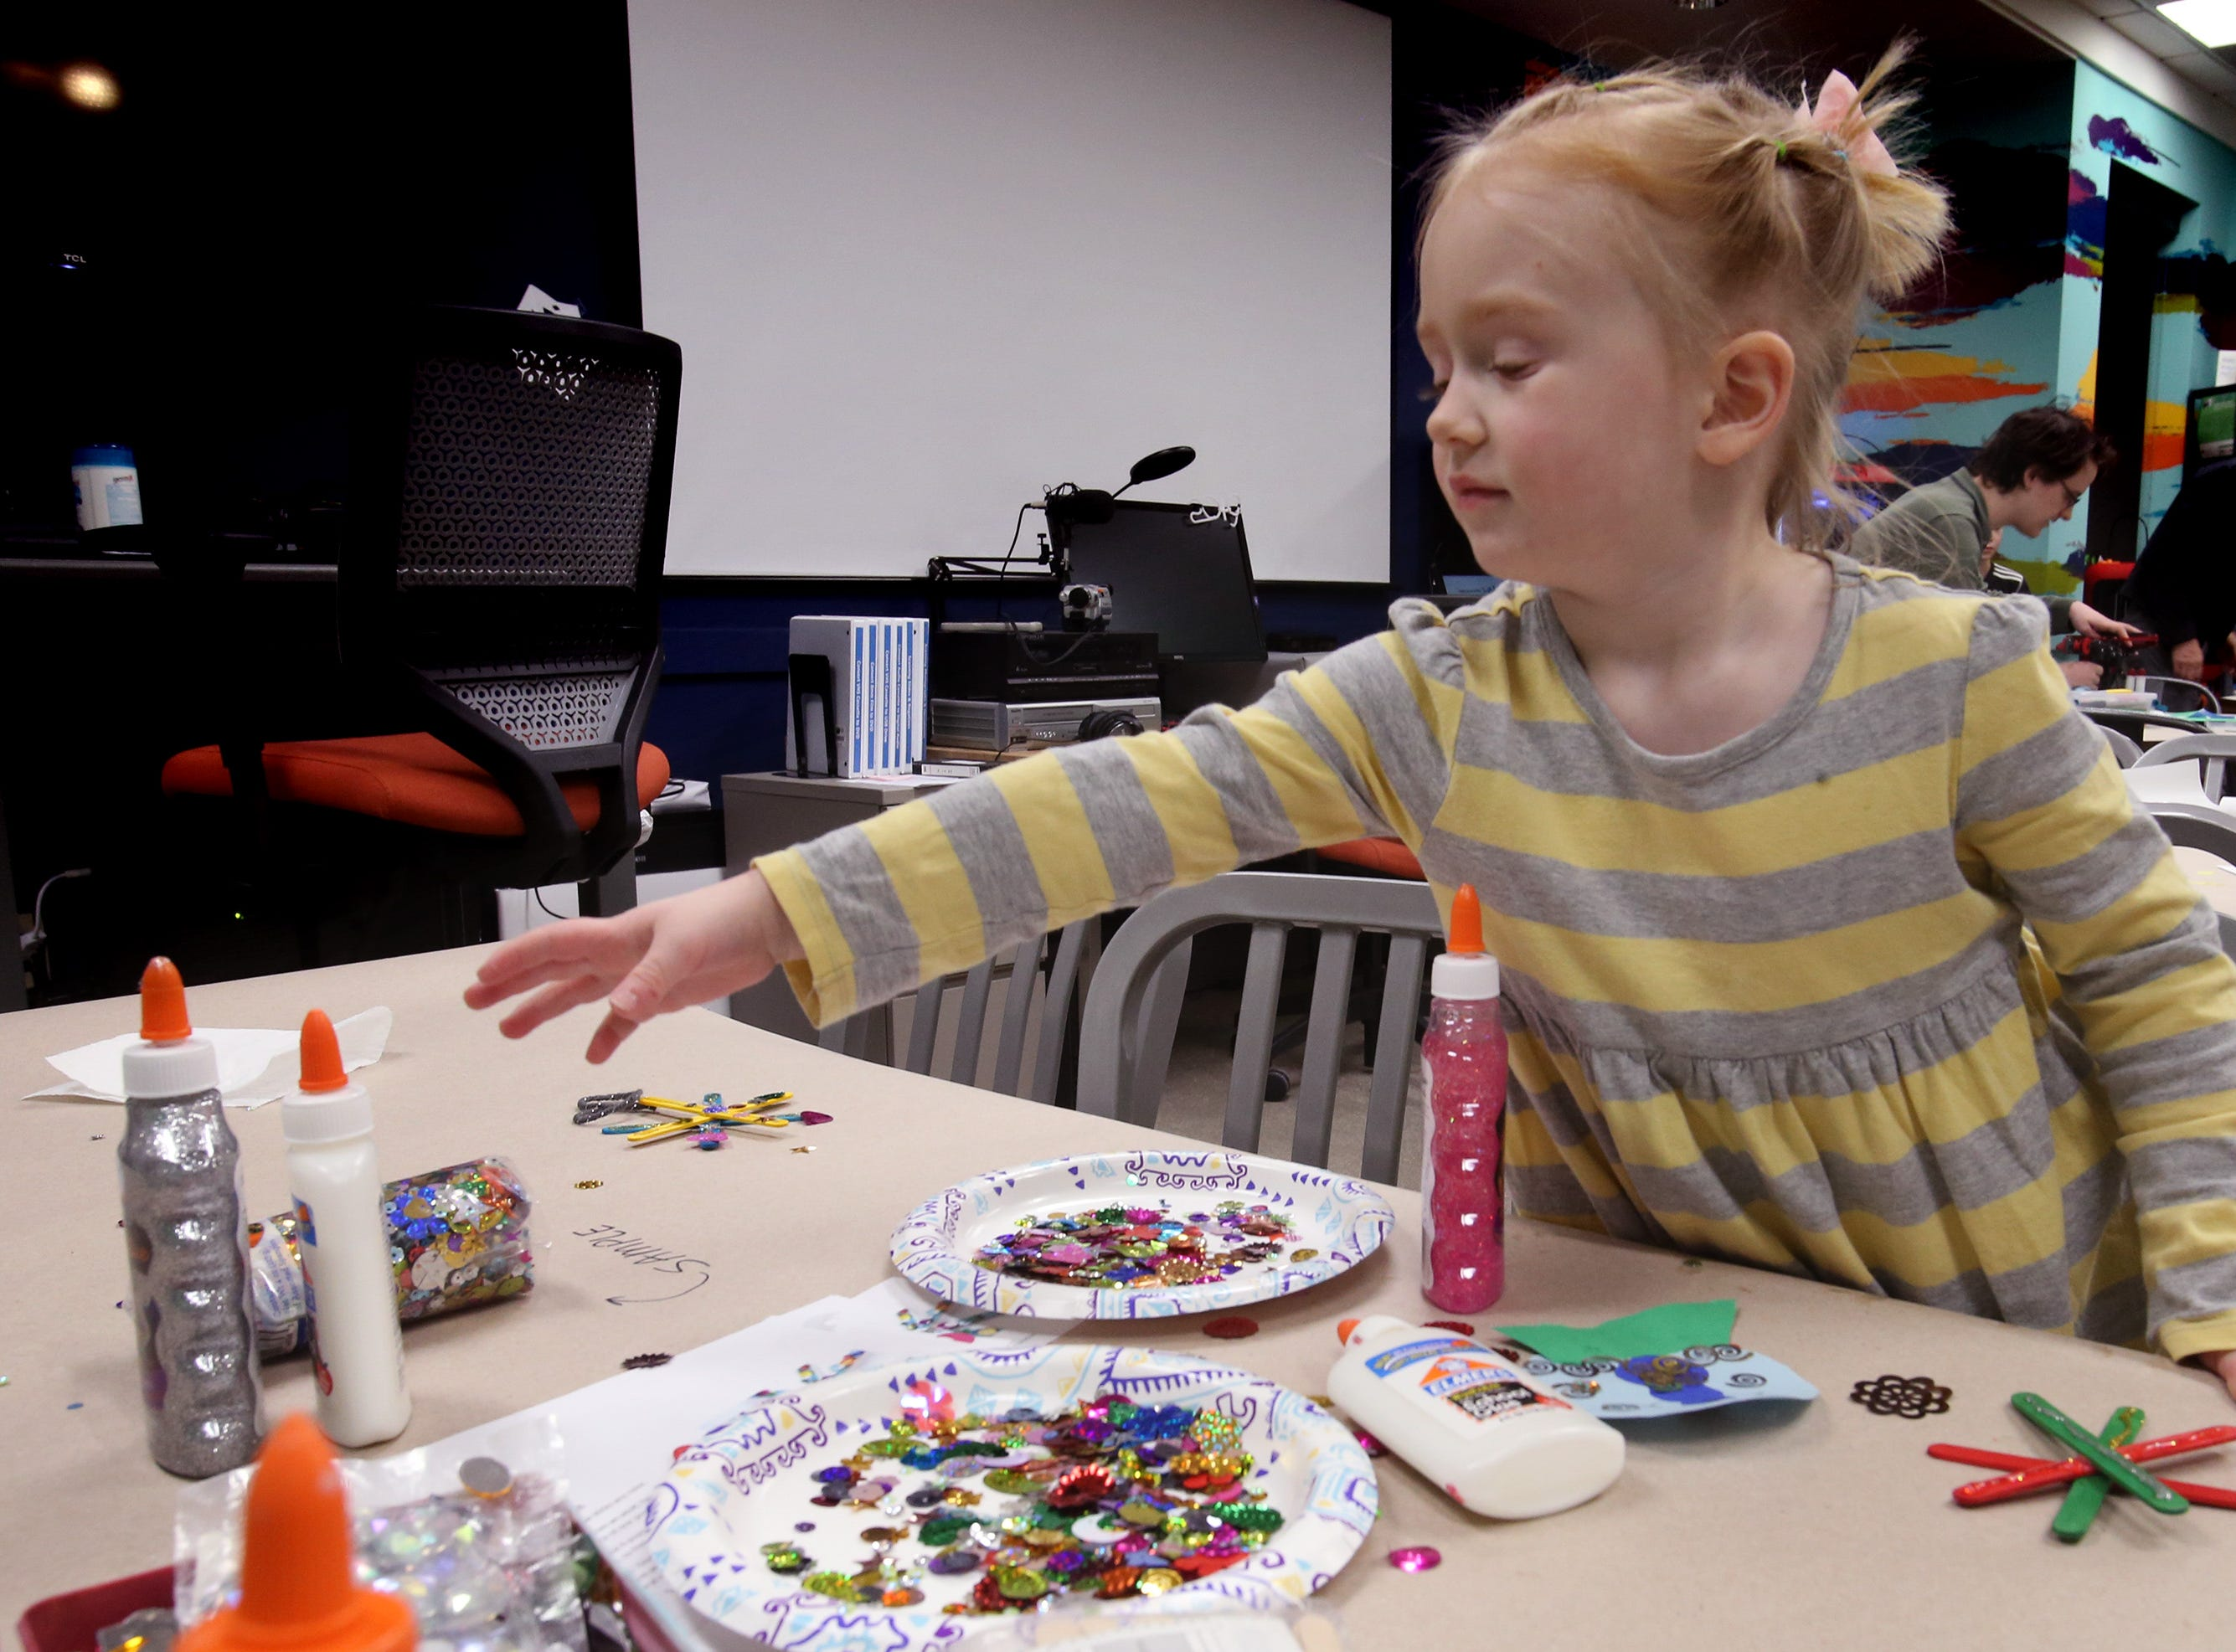 Amerlia Merkle, 4, reaches for glitter glue while making a sparkle snowflake during a holiday ornament workshop in the Mukwonago Community Library's MetaSpace 511 on Dec. 19.